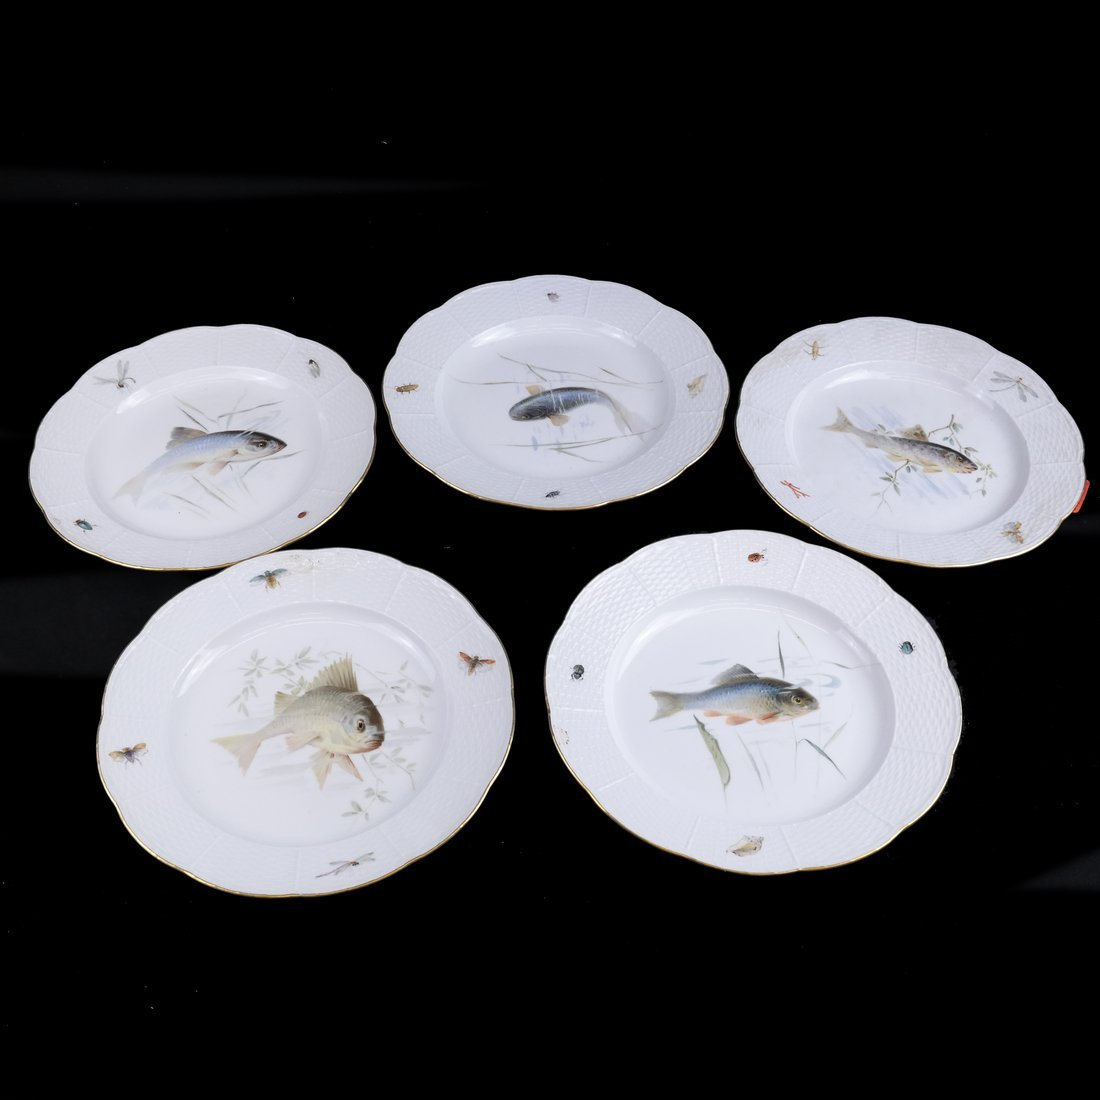 Set of 5 Meissen Porcelain Fish Plates